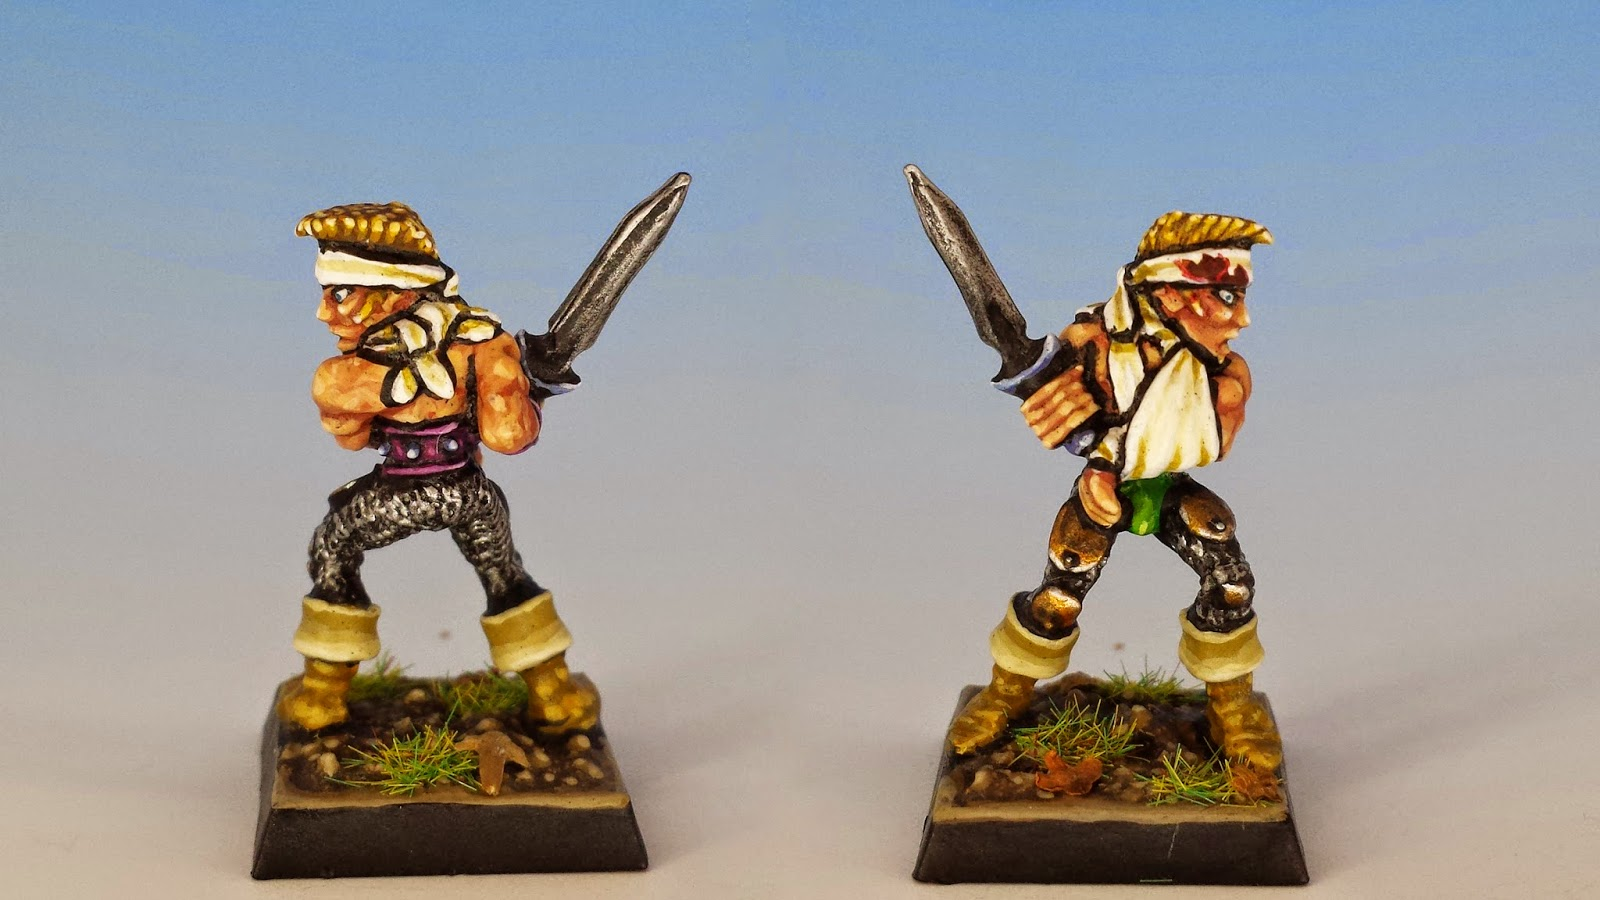 Elf Wardancer, Citadel Miniatures (1987, sculpted by Jes Goodwin, painted by M. Sullivan)